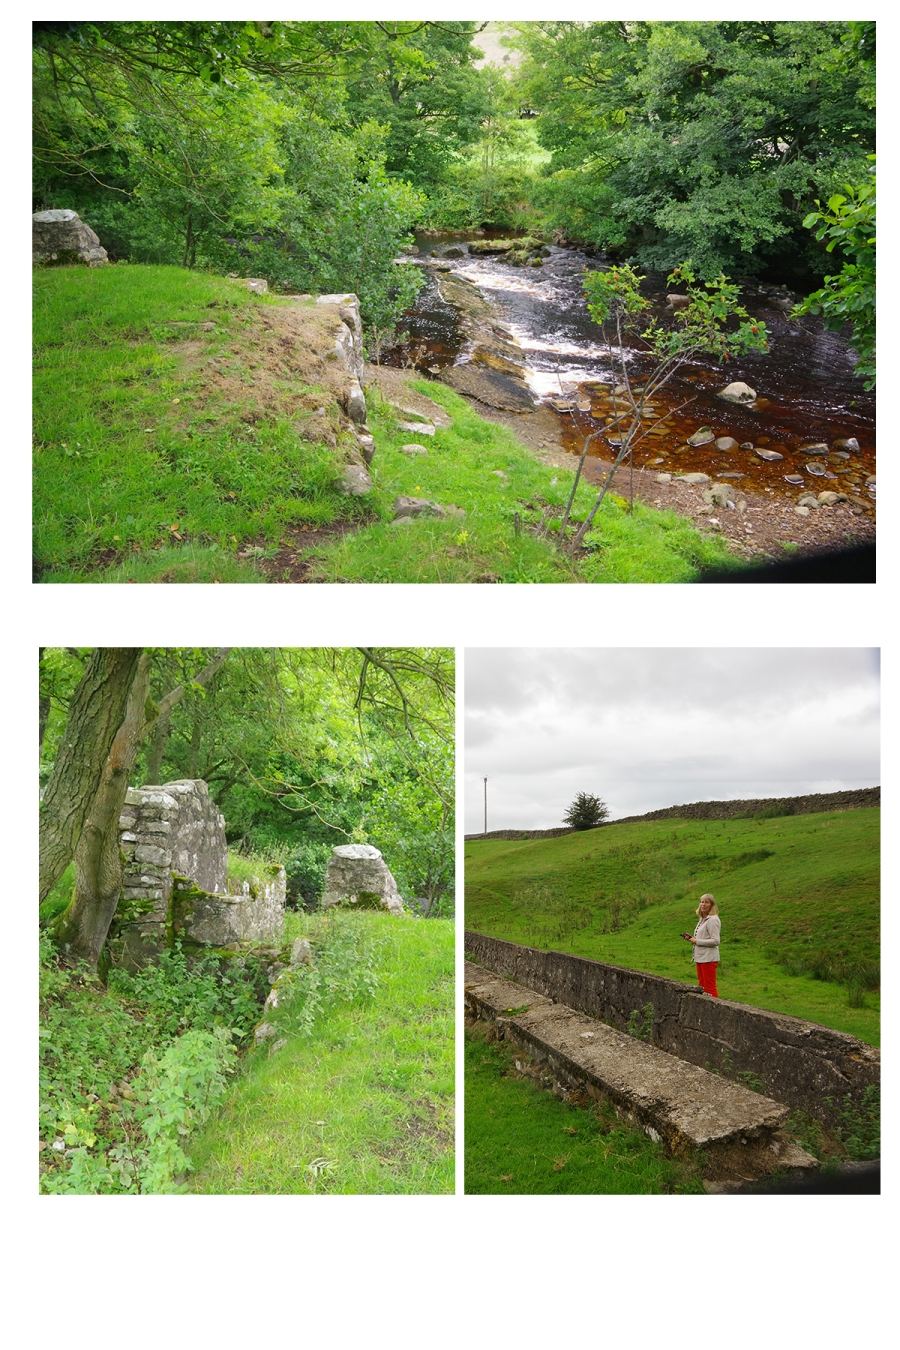 Reeth Mill weir leat composite